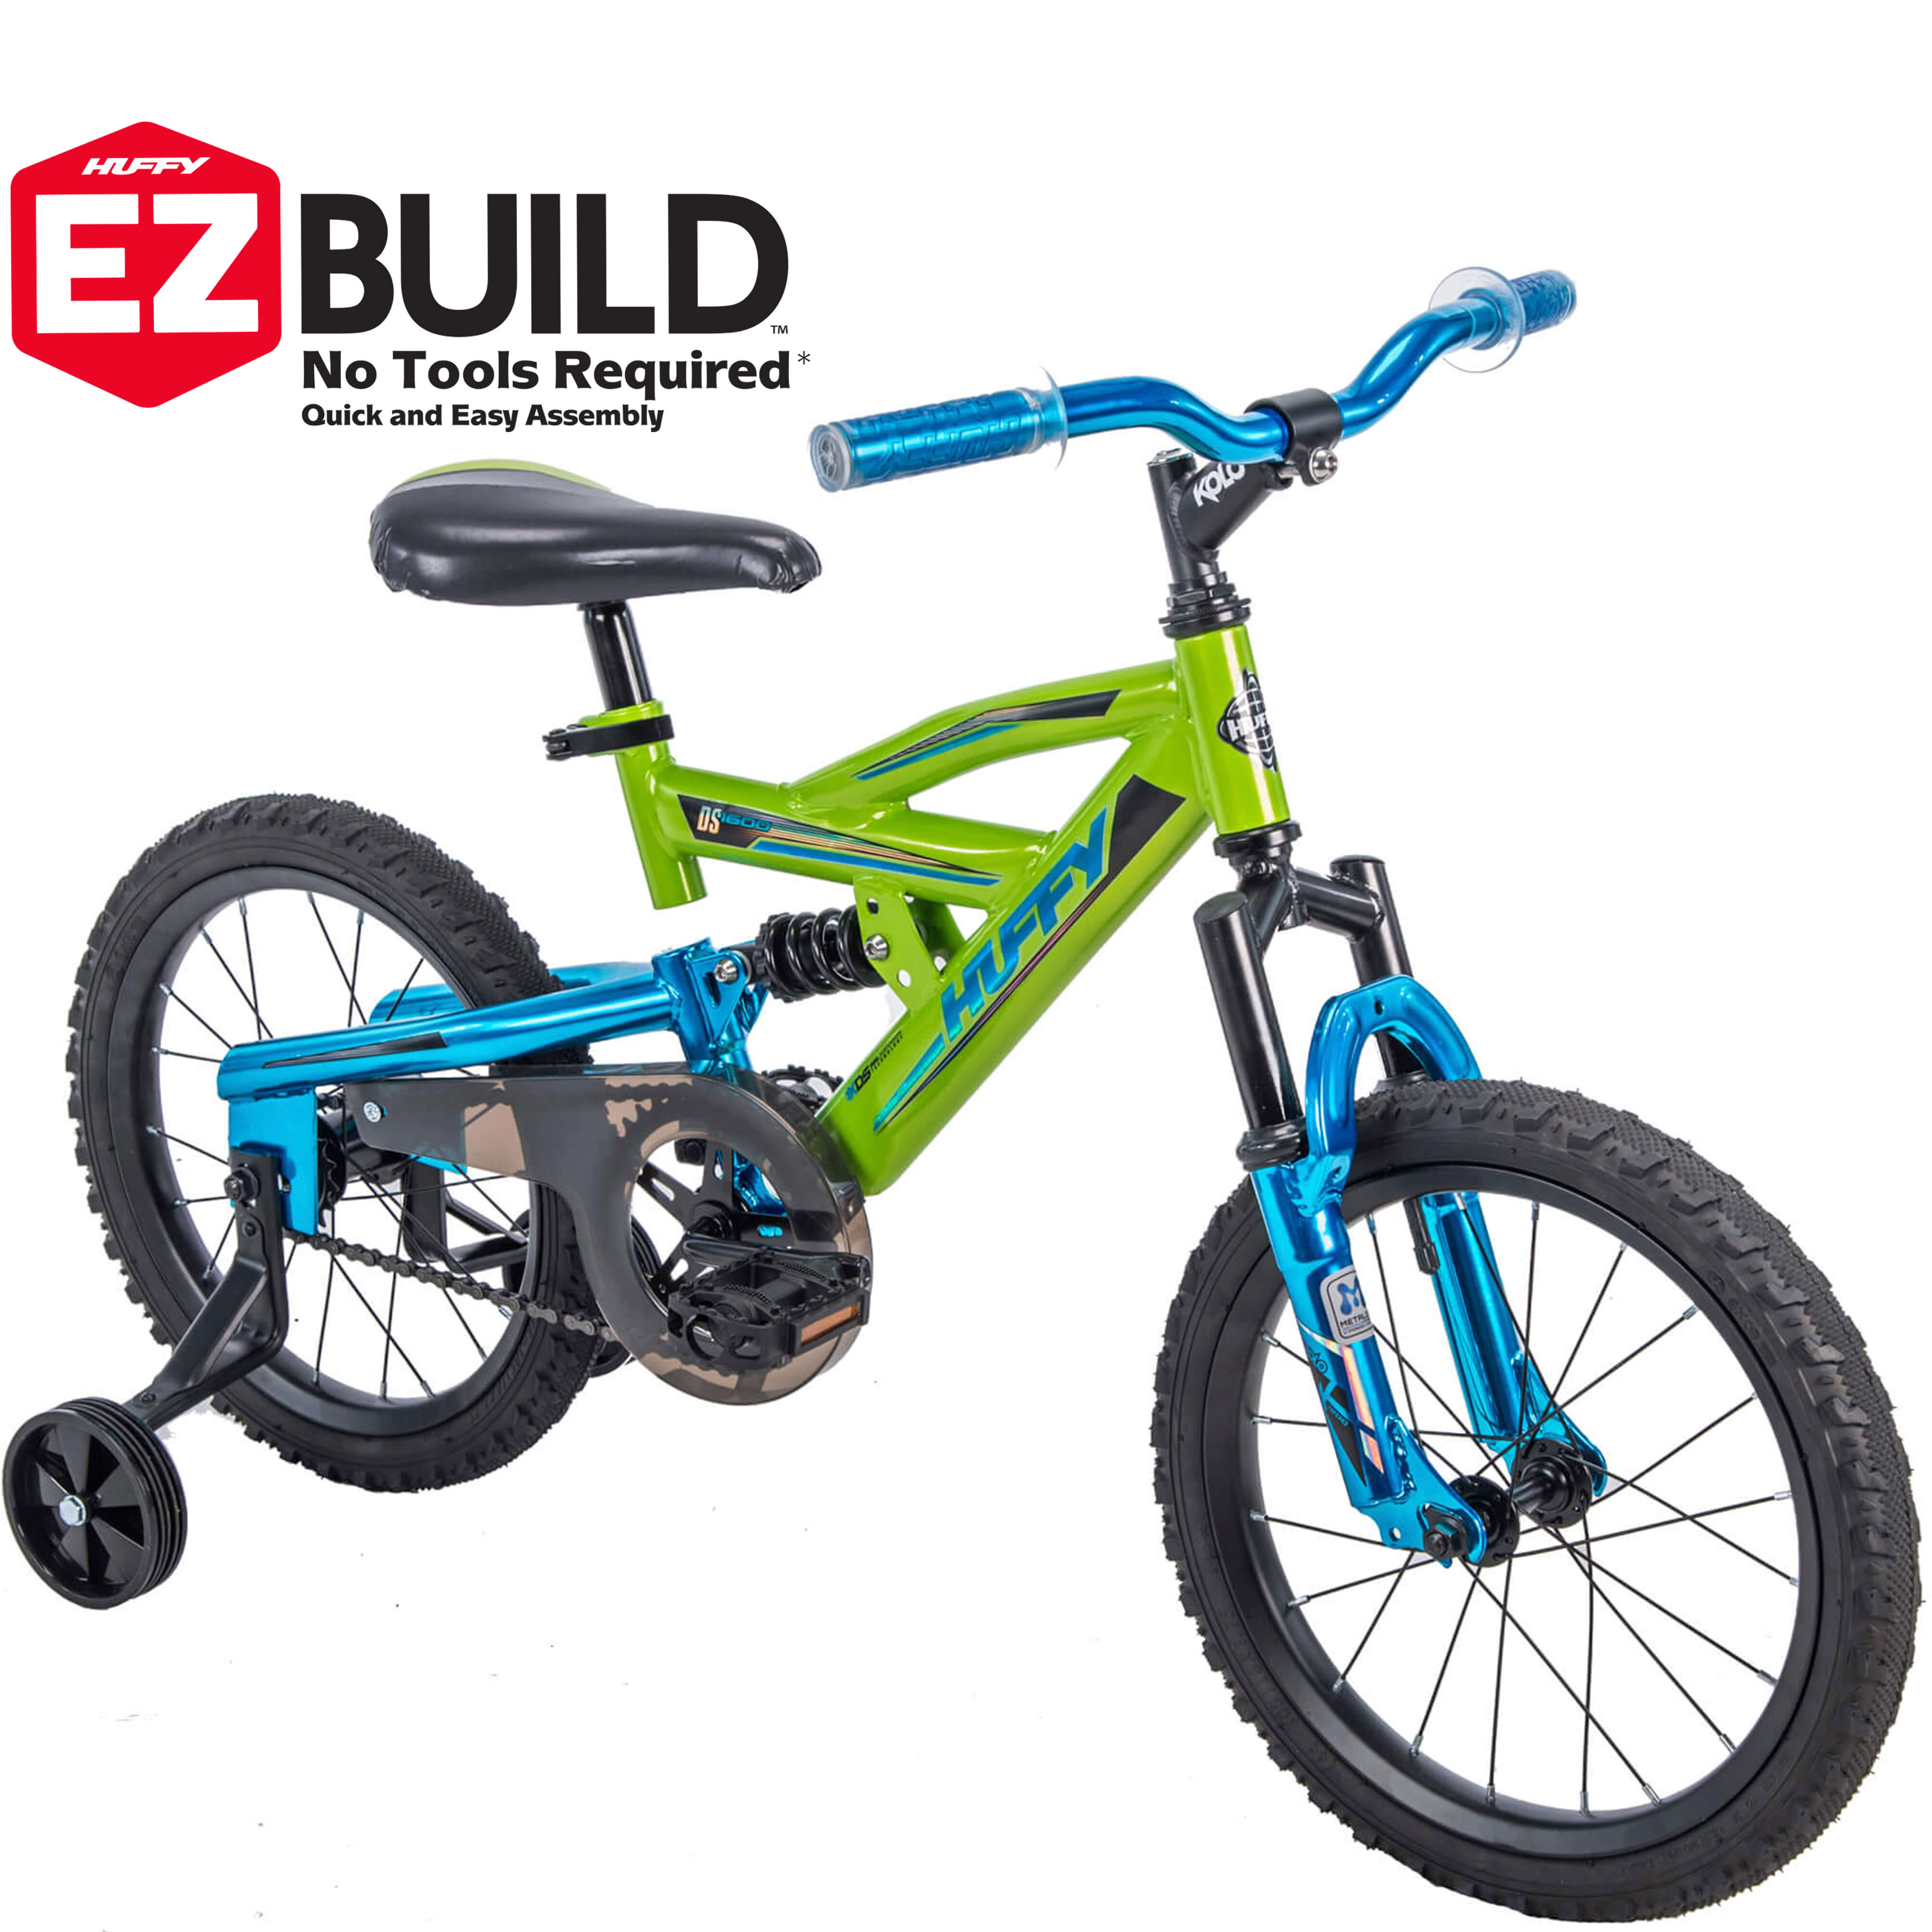 Huffy 16inches DS 1600 Boys EZ Build Metaloid Bike, Green